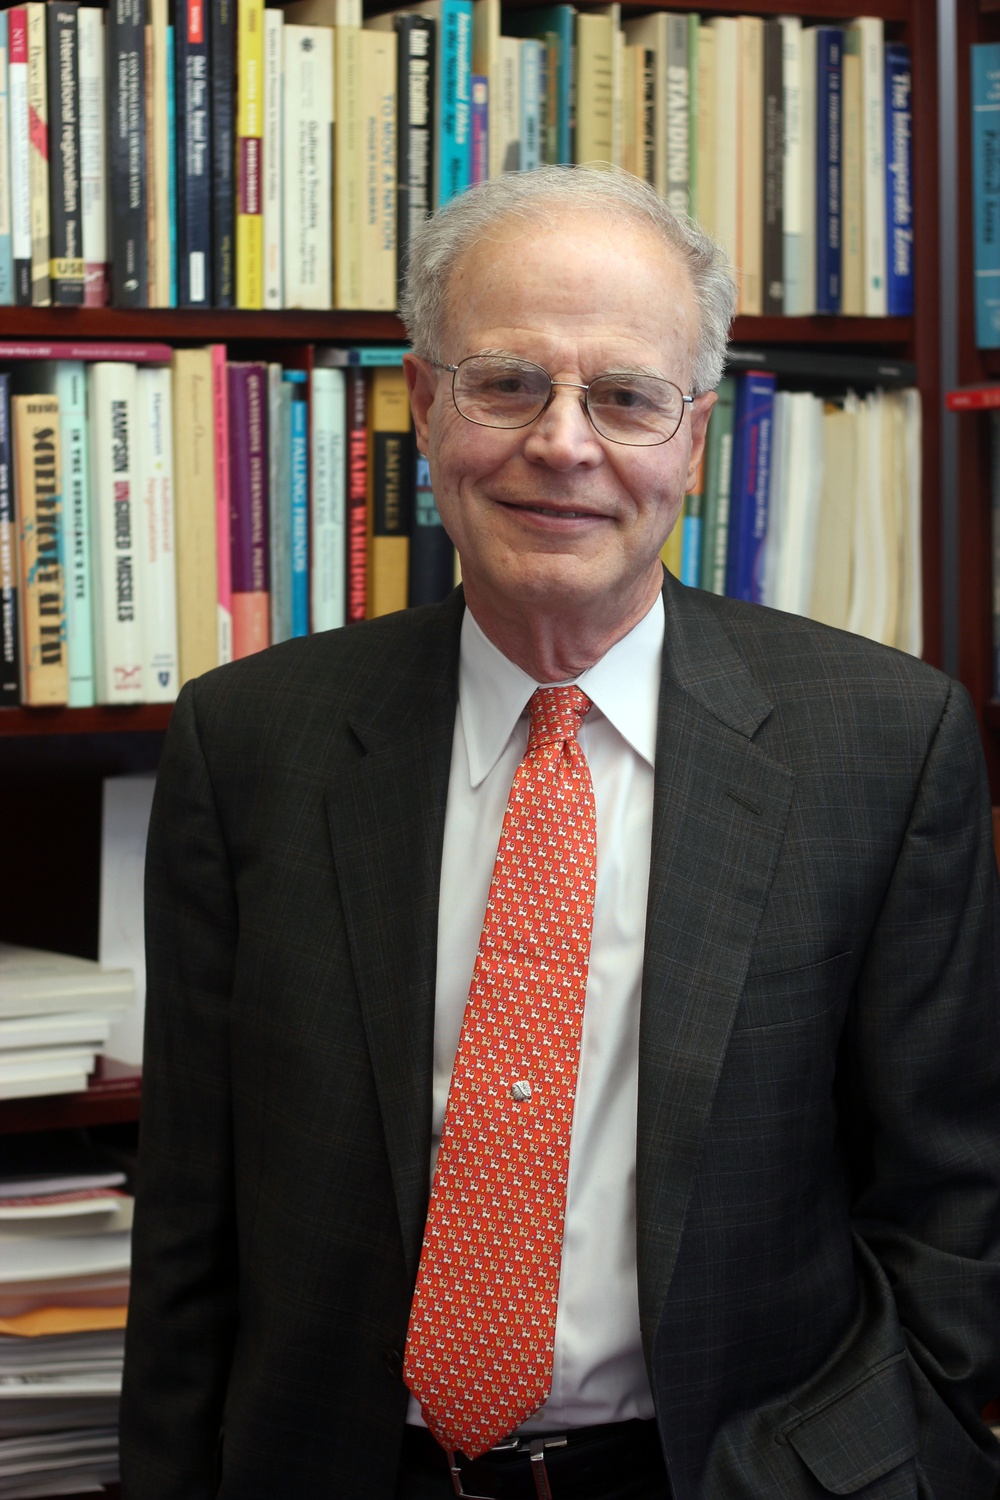 Government professor Jorge I. Dominguez retired at the end of the spring 2018 semester following harassment allegations.